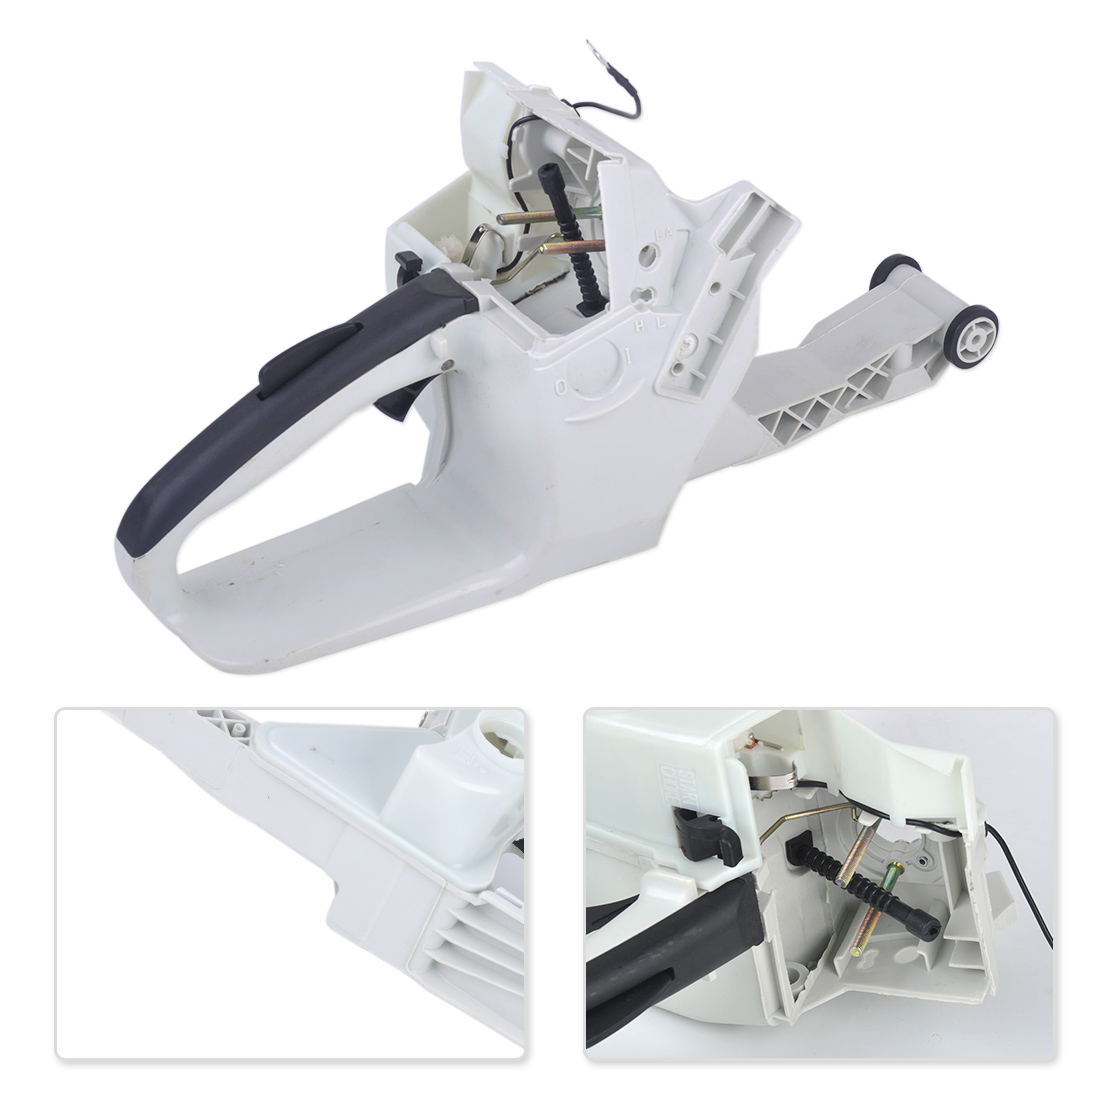 цена LETAOSK High Quality Gas Fuel Tank Rear Handle Fit for Stihl 038 038AV 038 Magnum MS380 1119 350 0852 Chainsaw